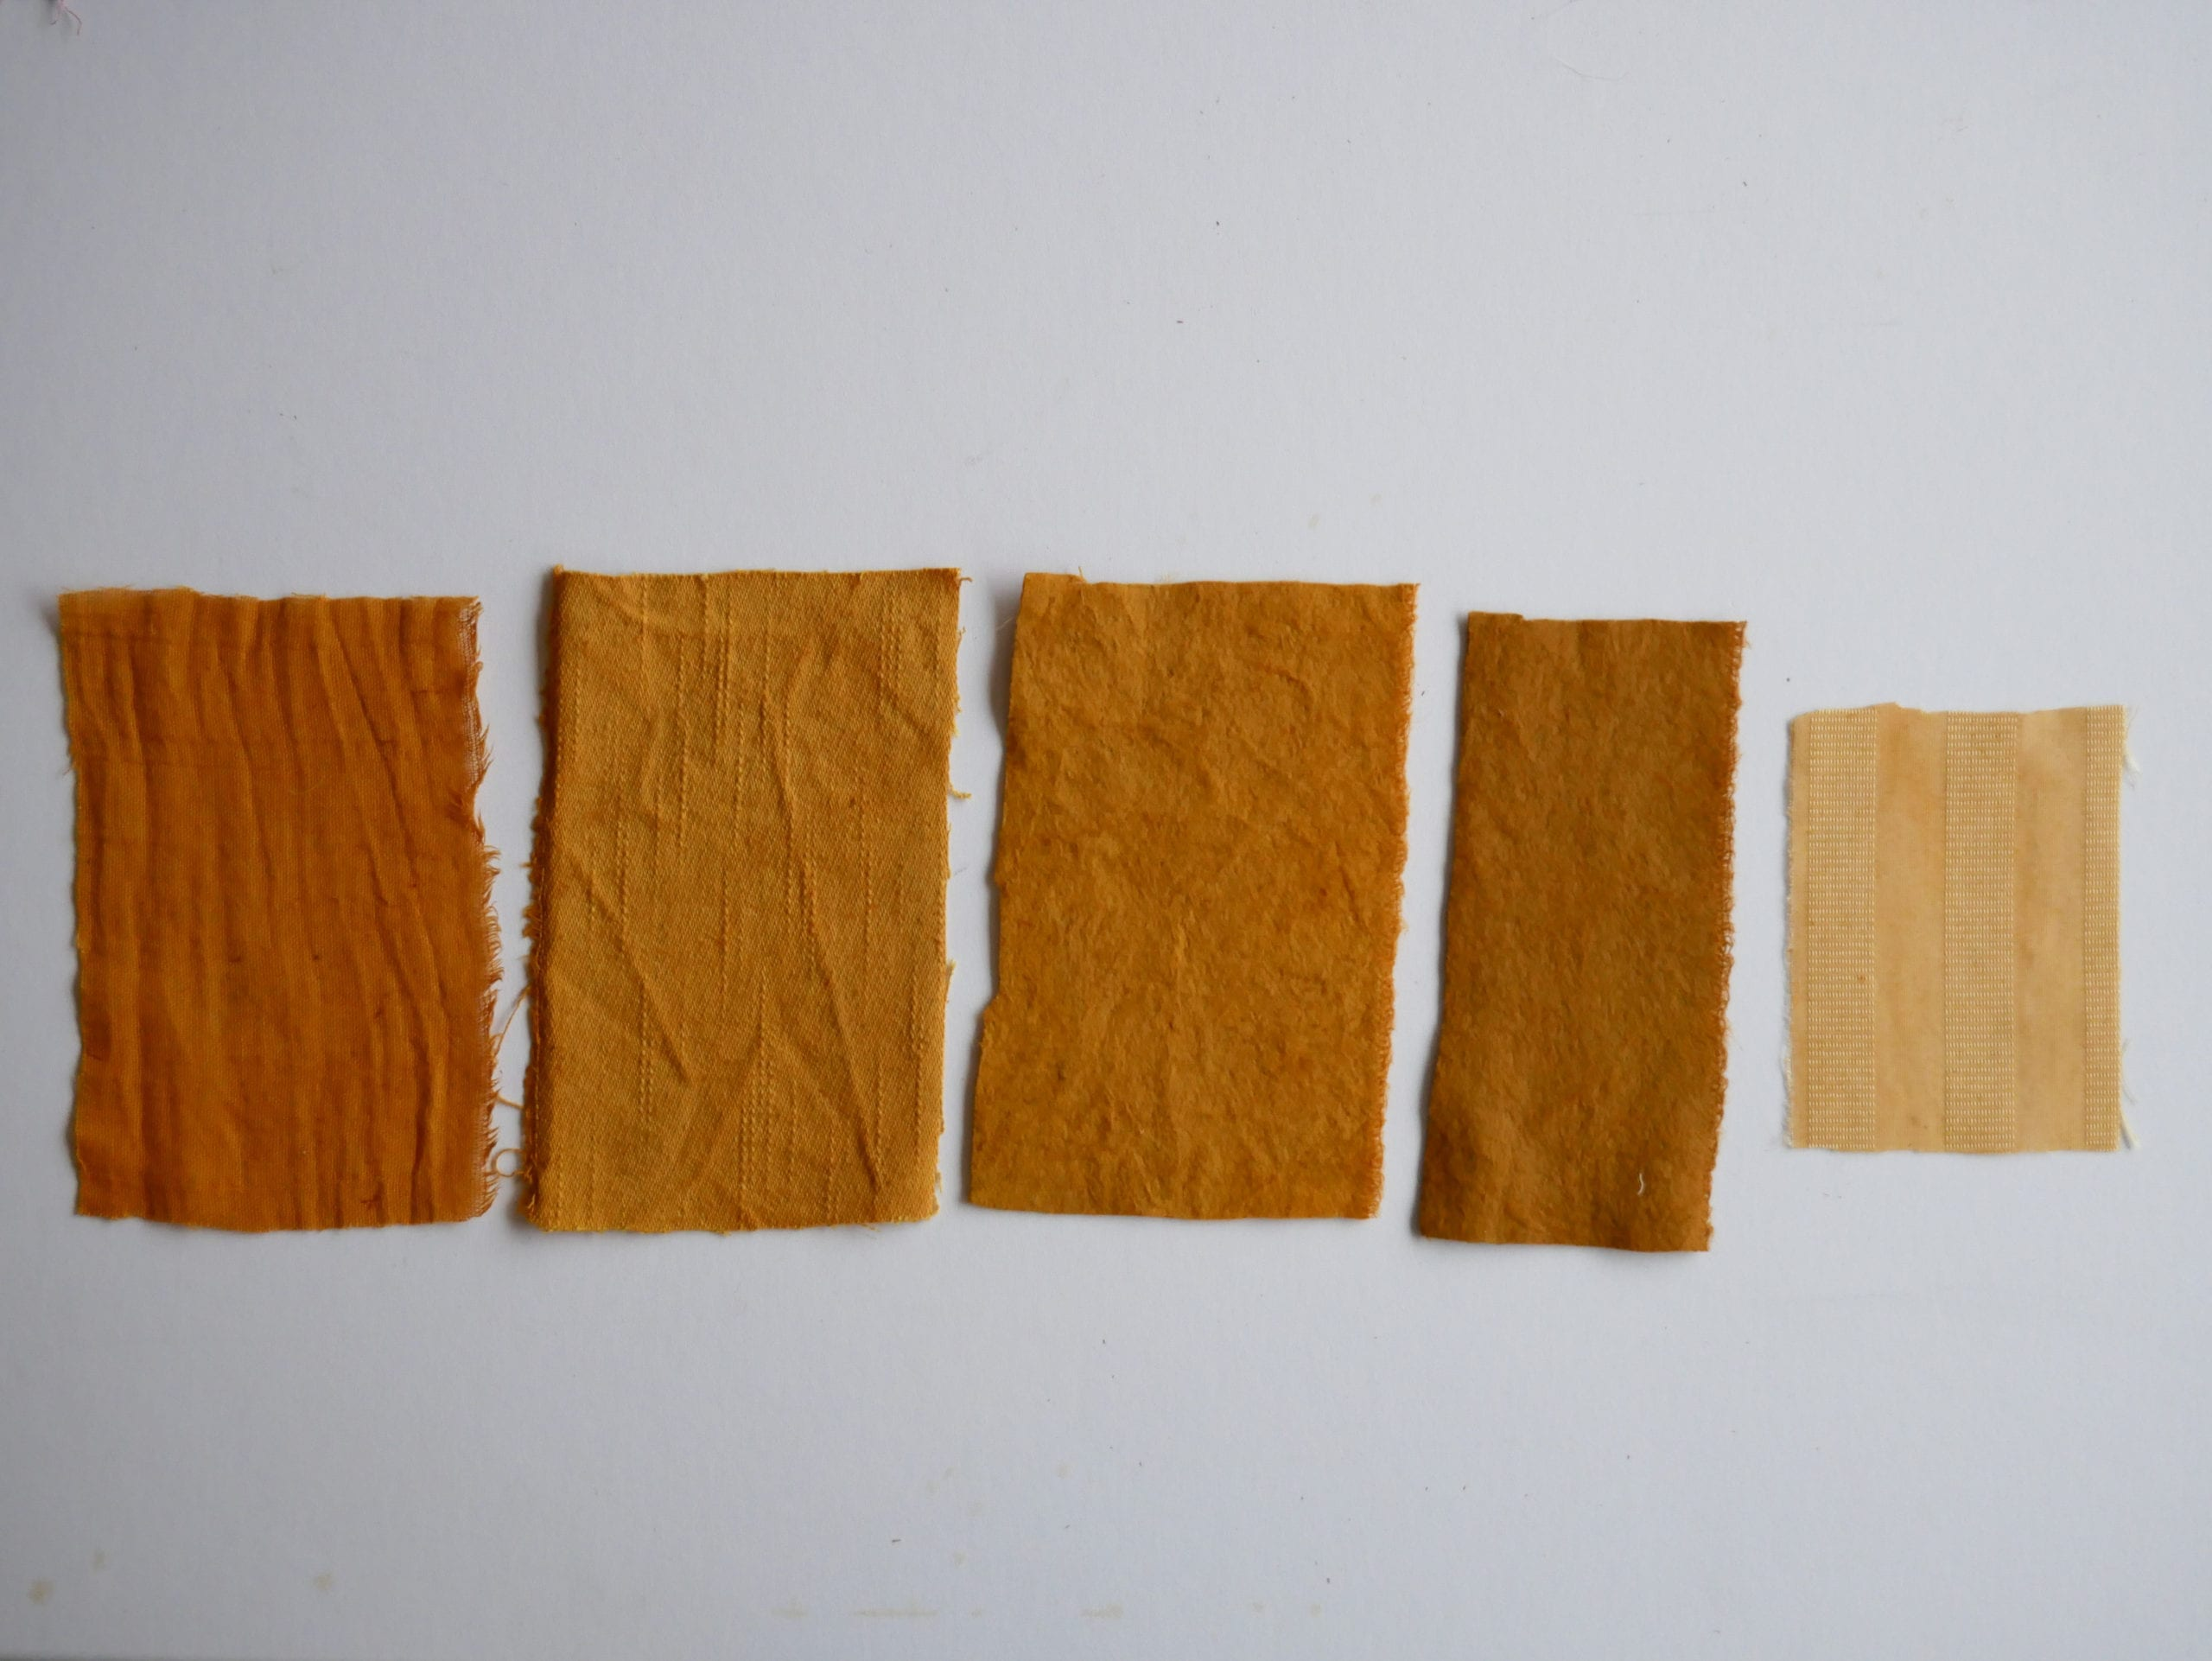 Onion skin natural dye samples on different substrates